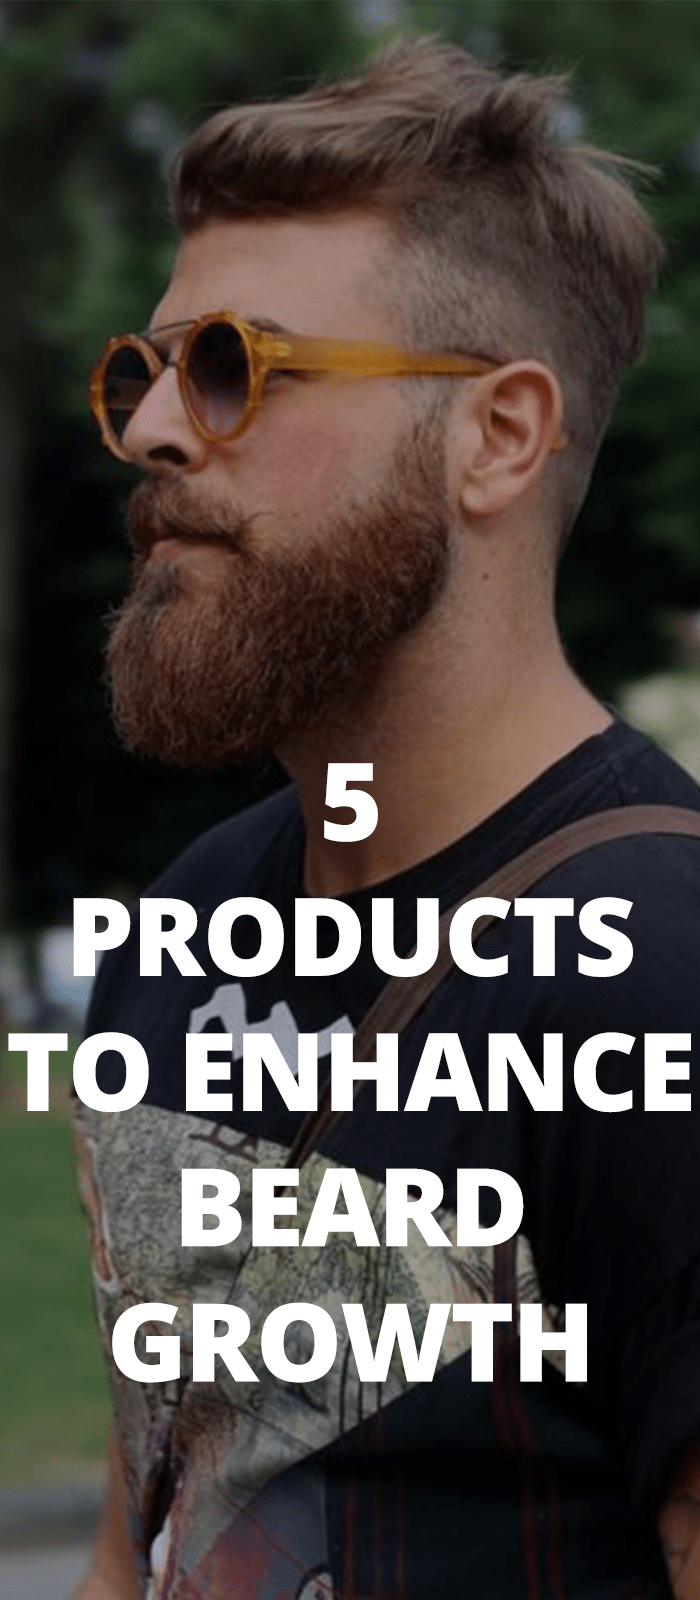 5 Products To Enhance Beard Growth 5 Products To Enhance Beard Growth Beard beard growth